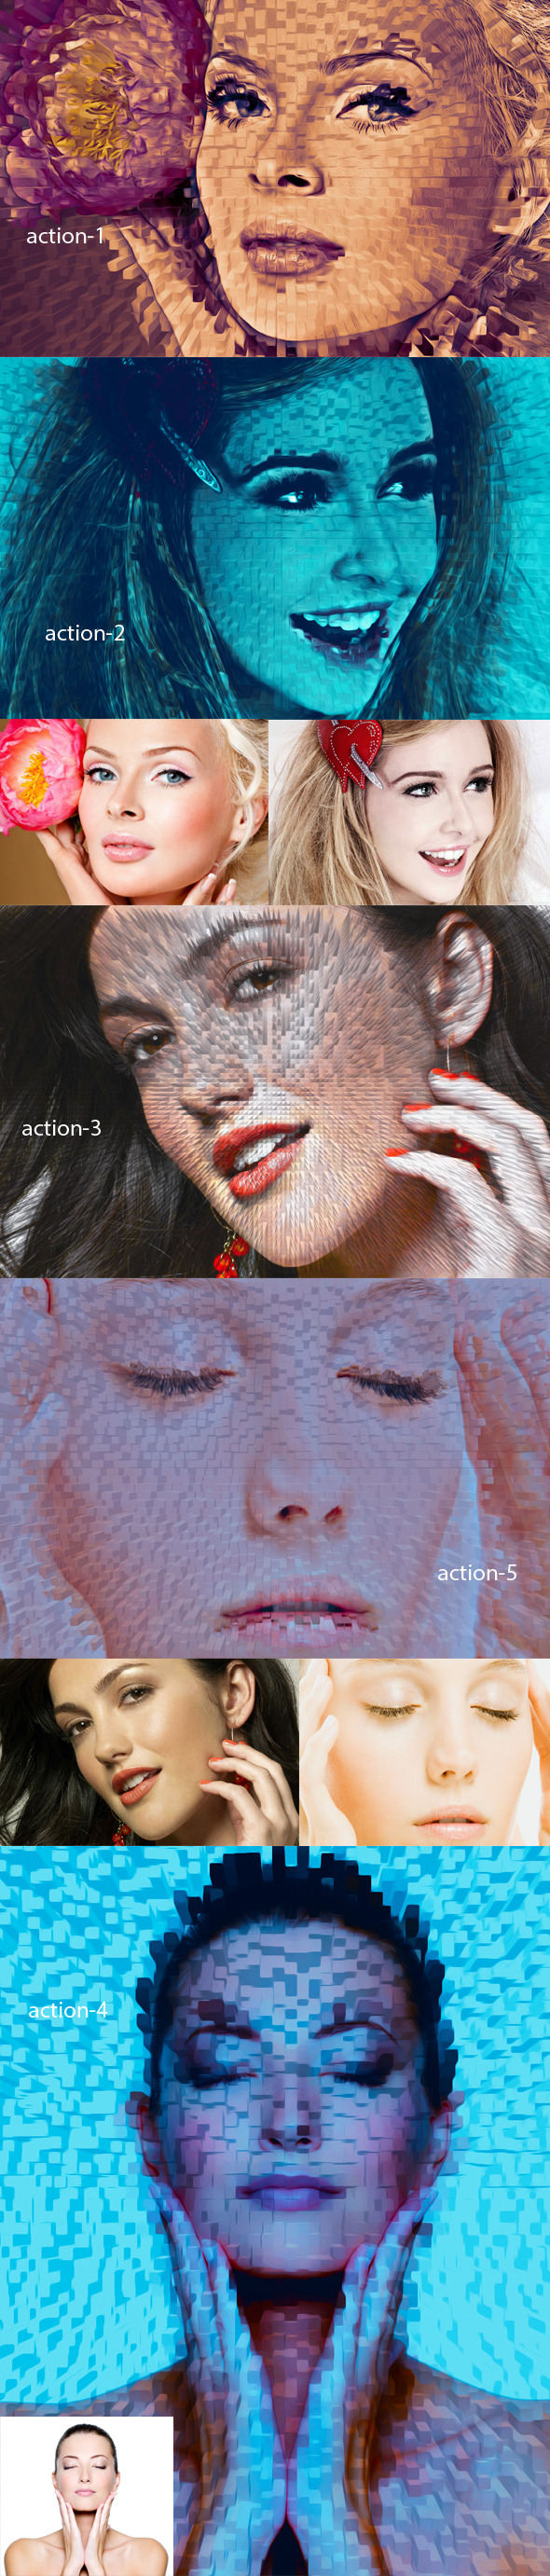 Pixel Art Action - Actions Photoshop